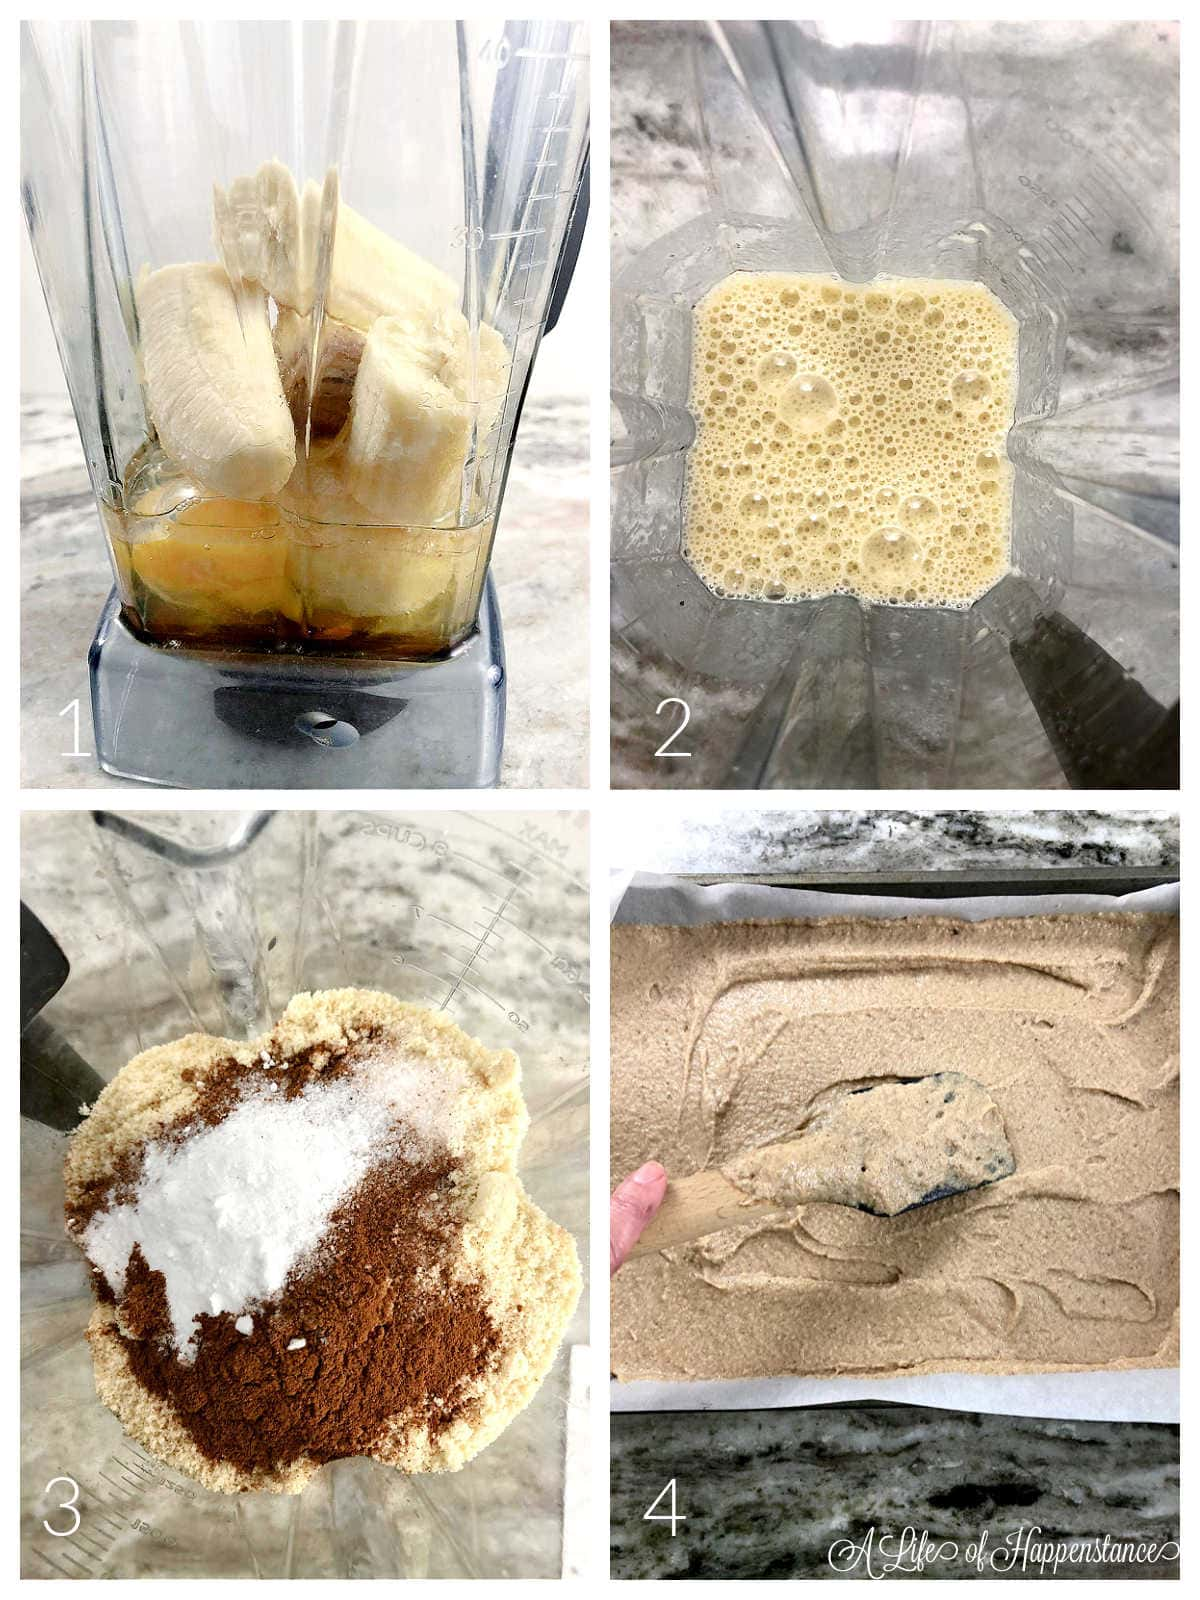 A four photo collage showing how to make the banana bar batter. Photo 1; all of the wet ingredients in a blender. Photo 2; the wet ingredients frothy. Photo 3; the dry ingredients added to the blender. Photo 4; smoothing the batter in the baking pan.